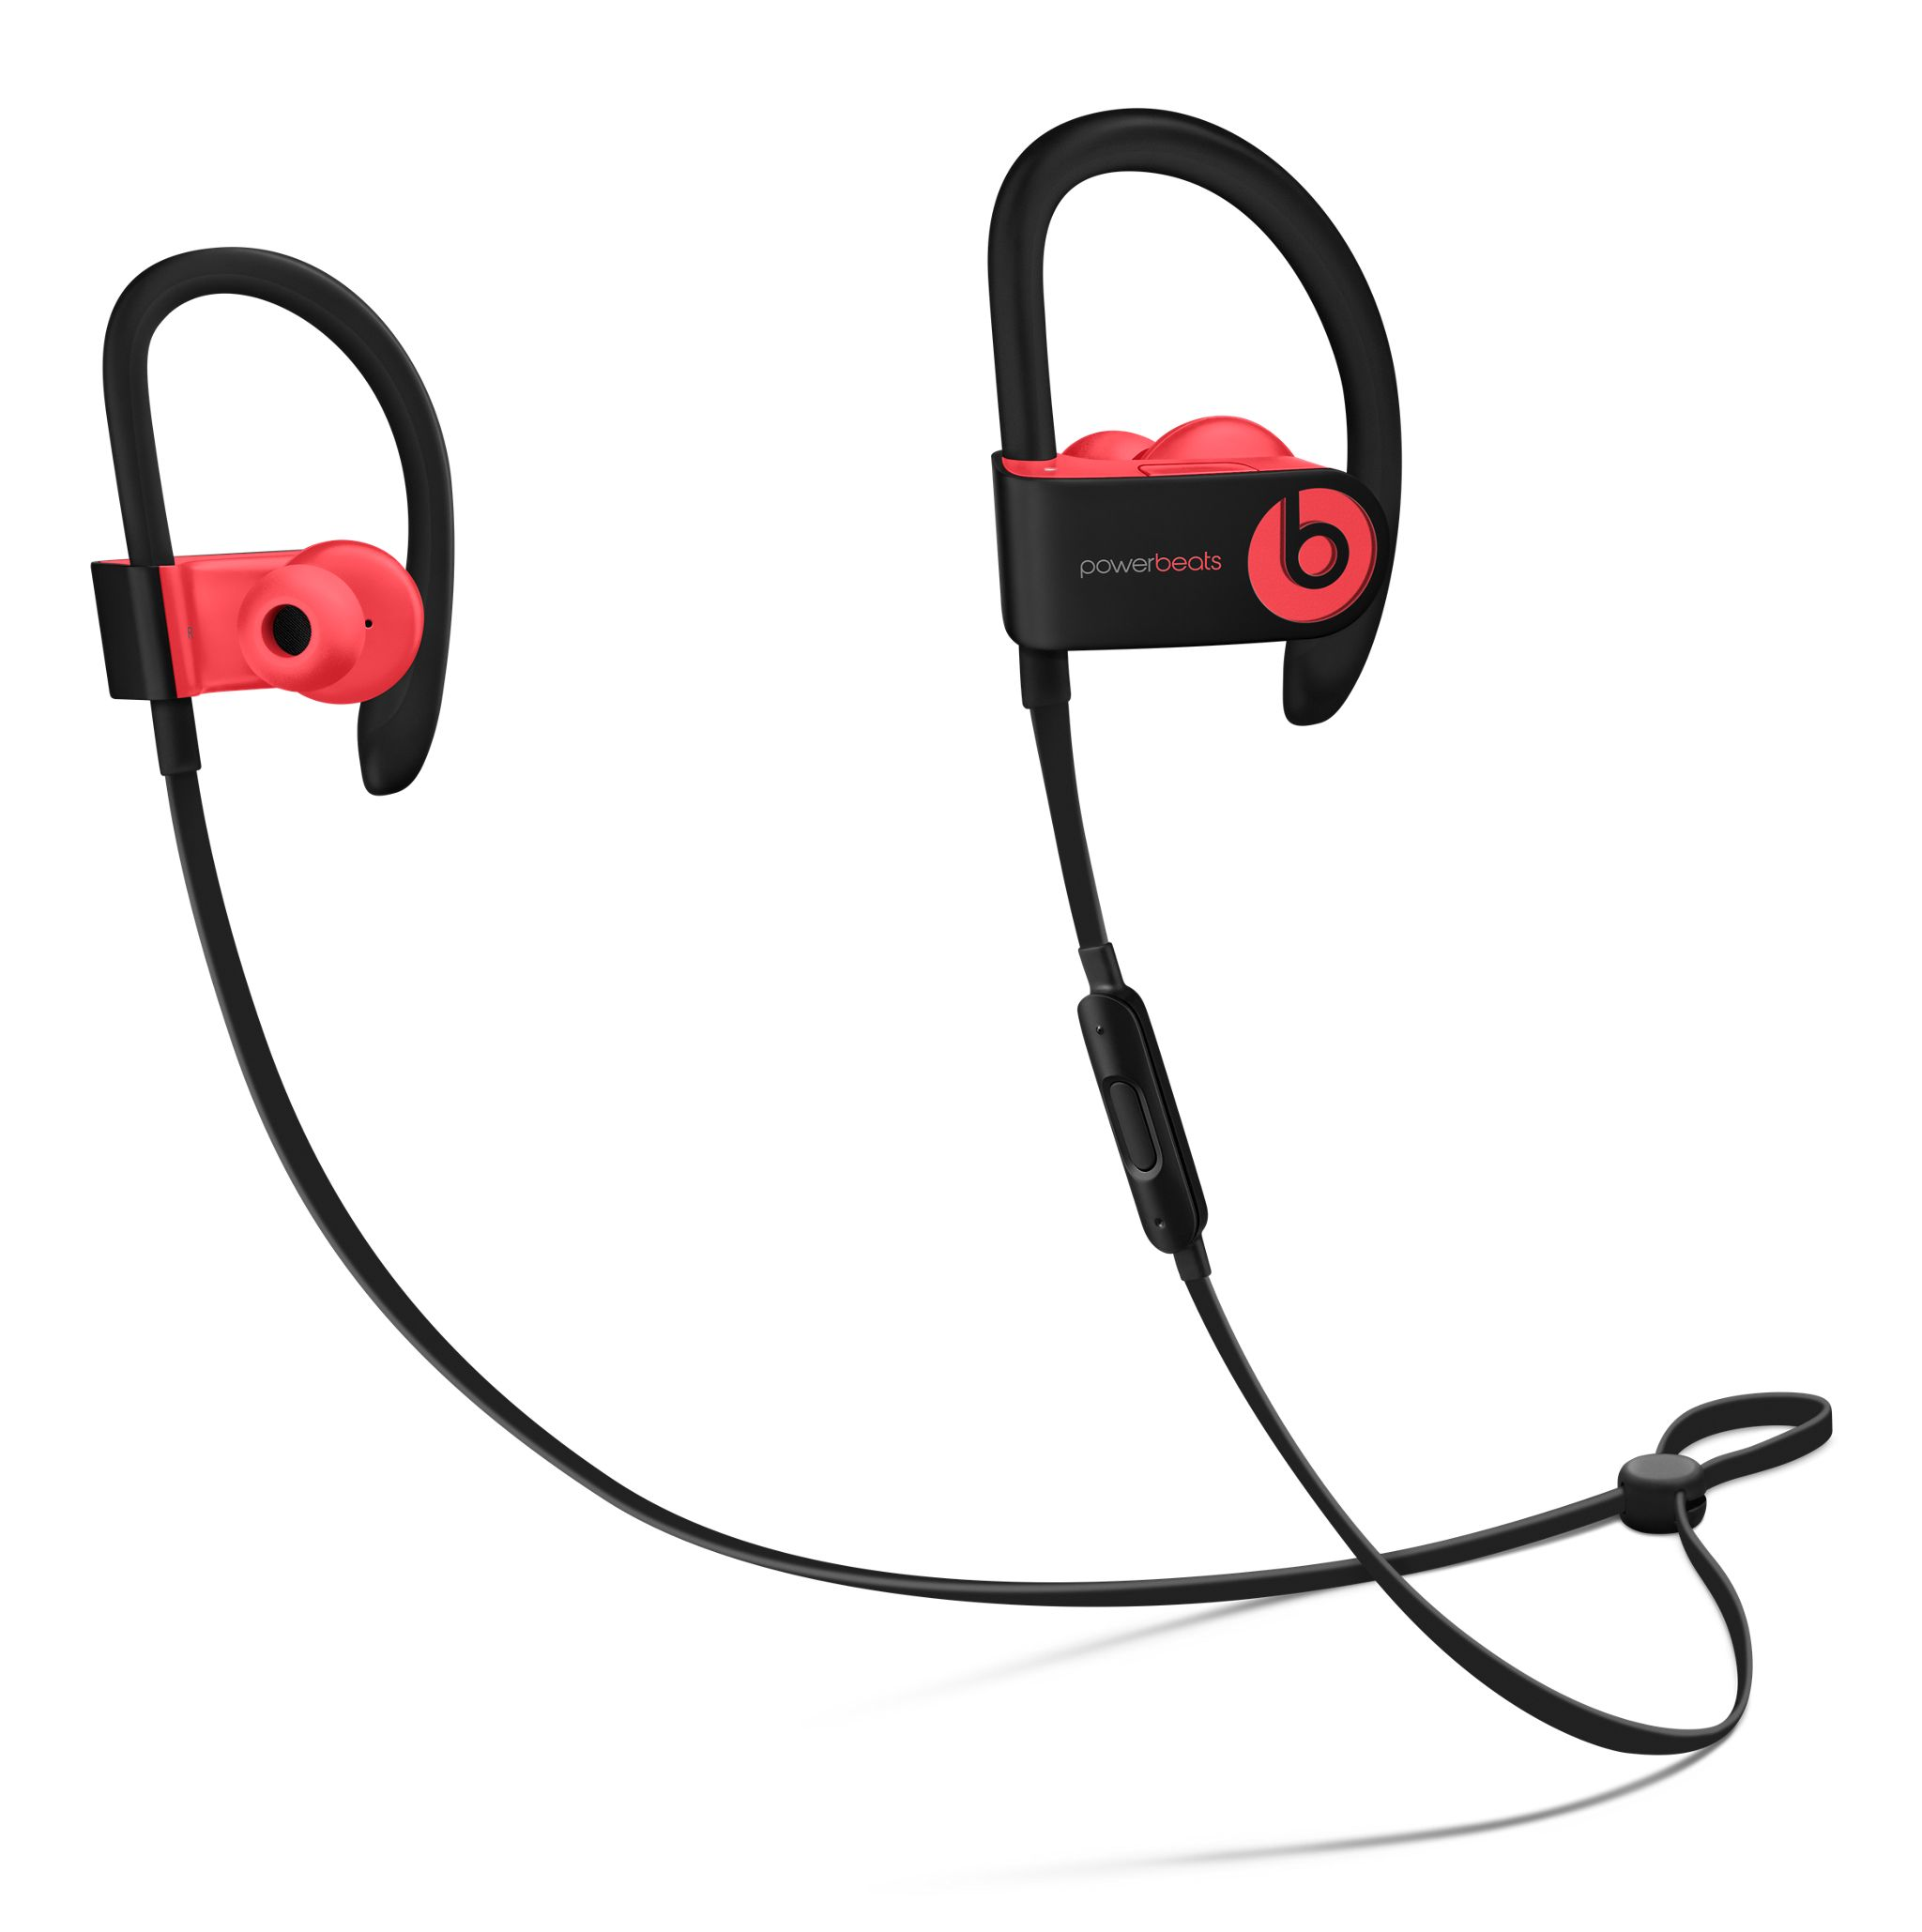 Powerbeats3 Wireless Earphones image 001